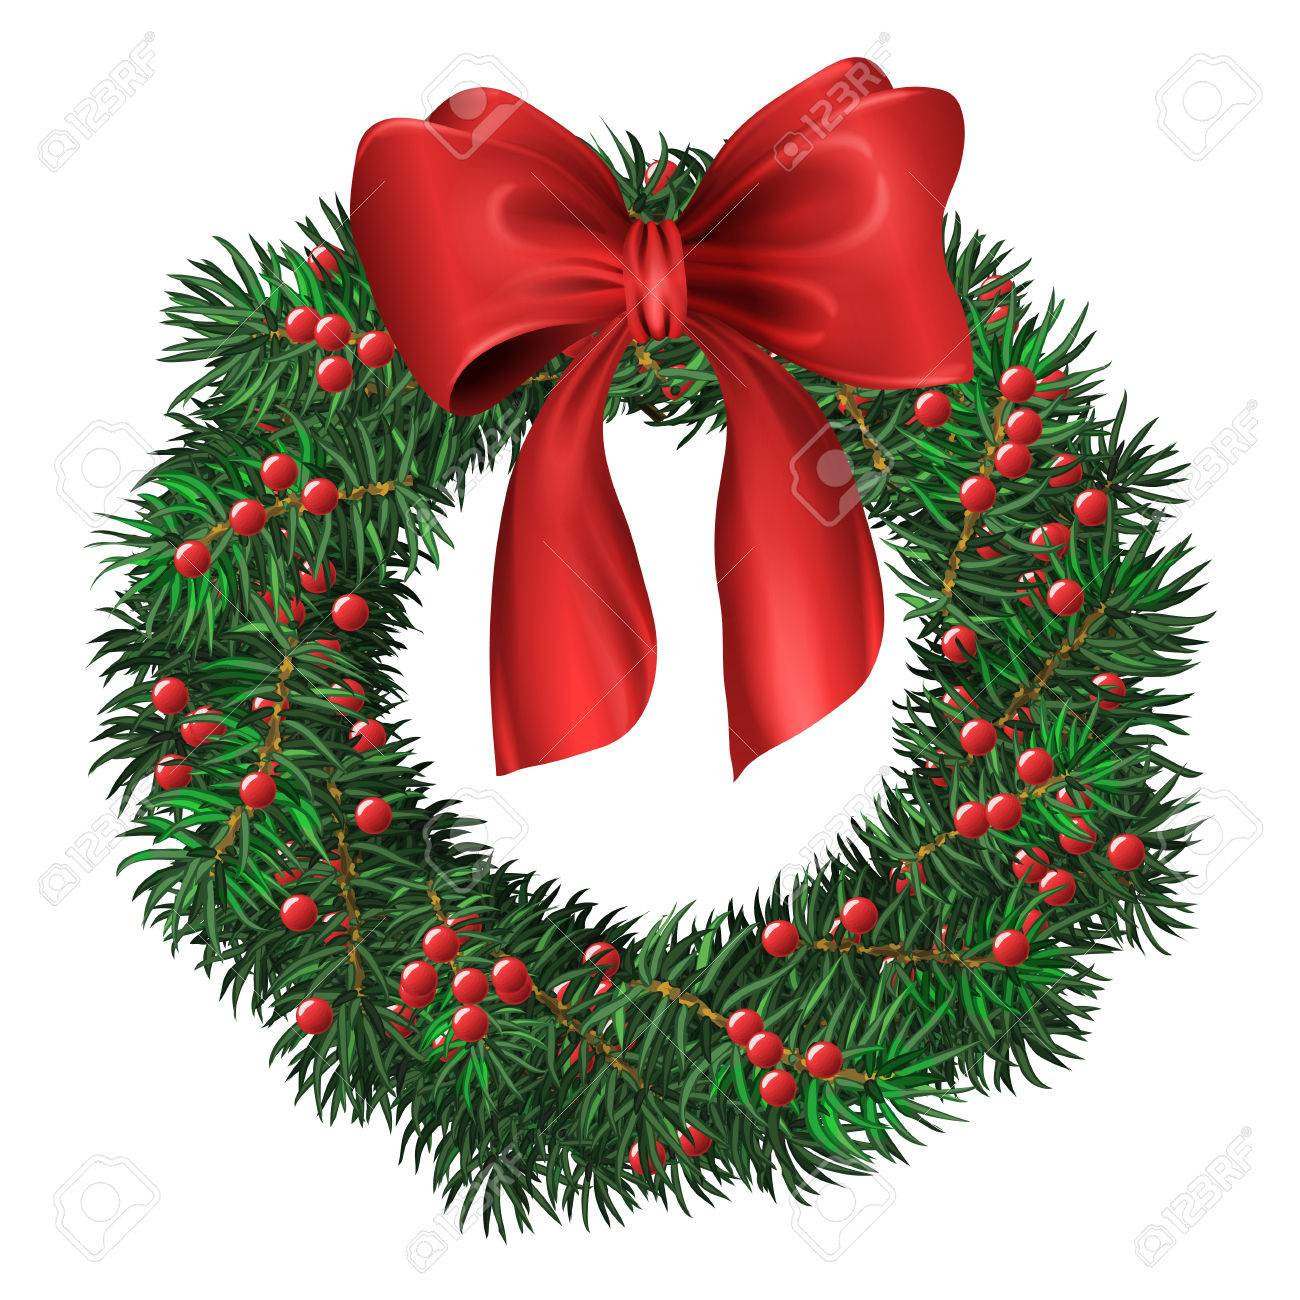 Evergreen Holiday Wreath With Red Bow And Berries In Circular Royalty Free Cliparts Vectors And Stock Illustration Image 47540665